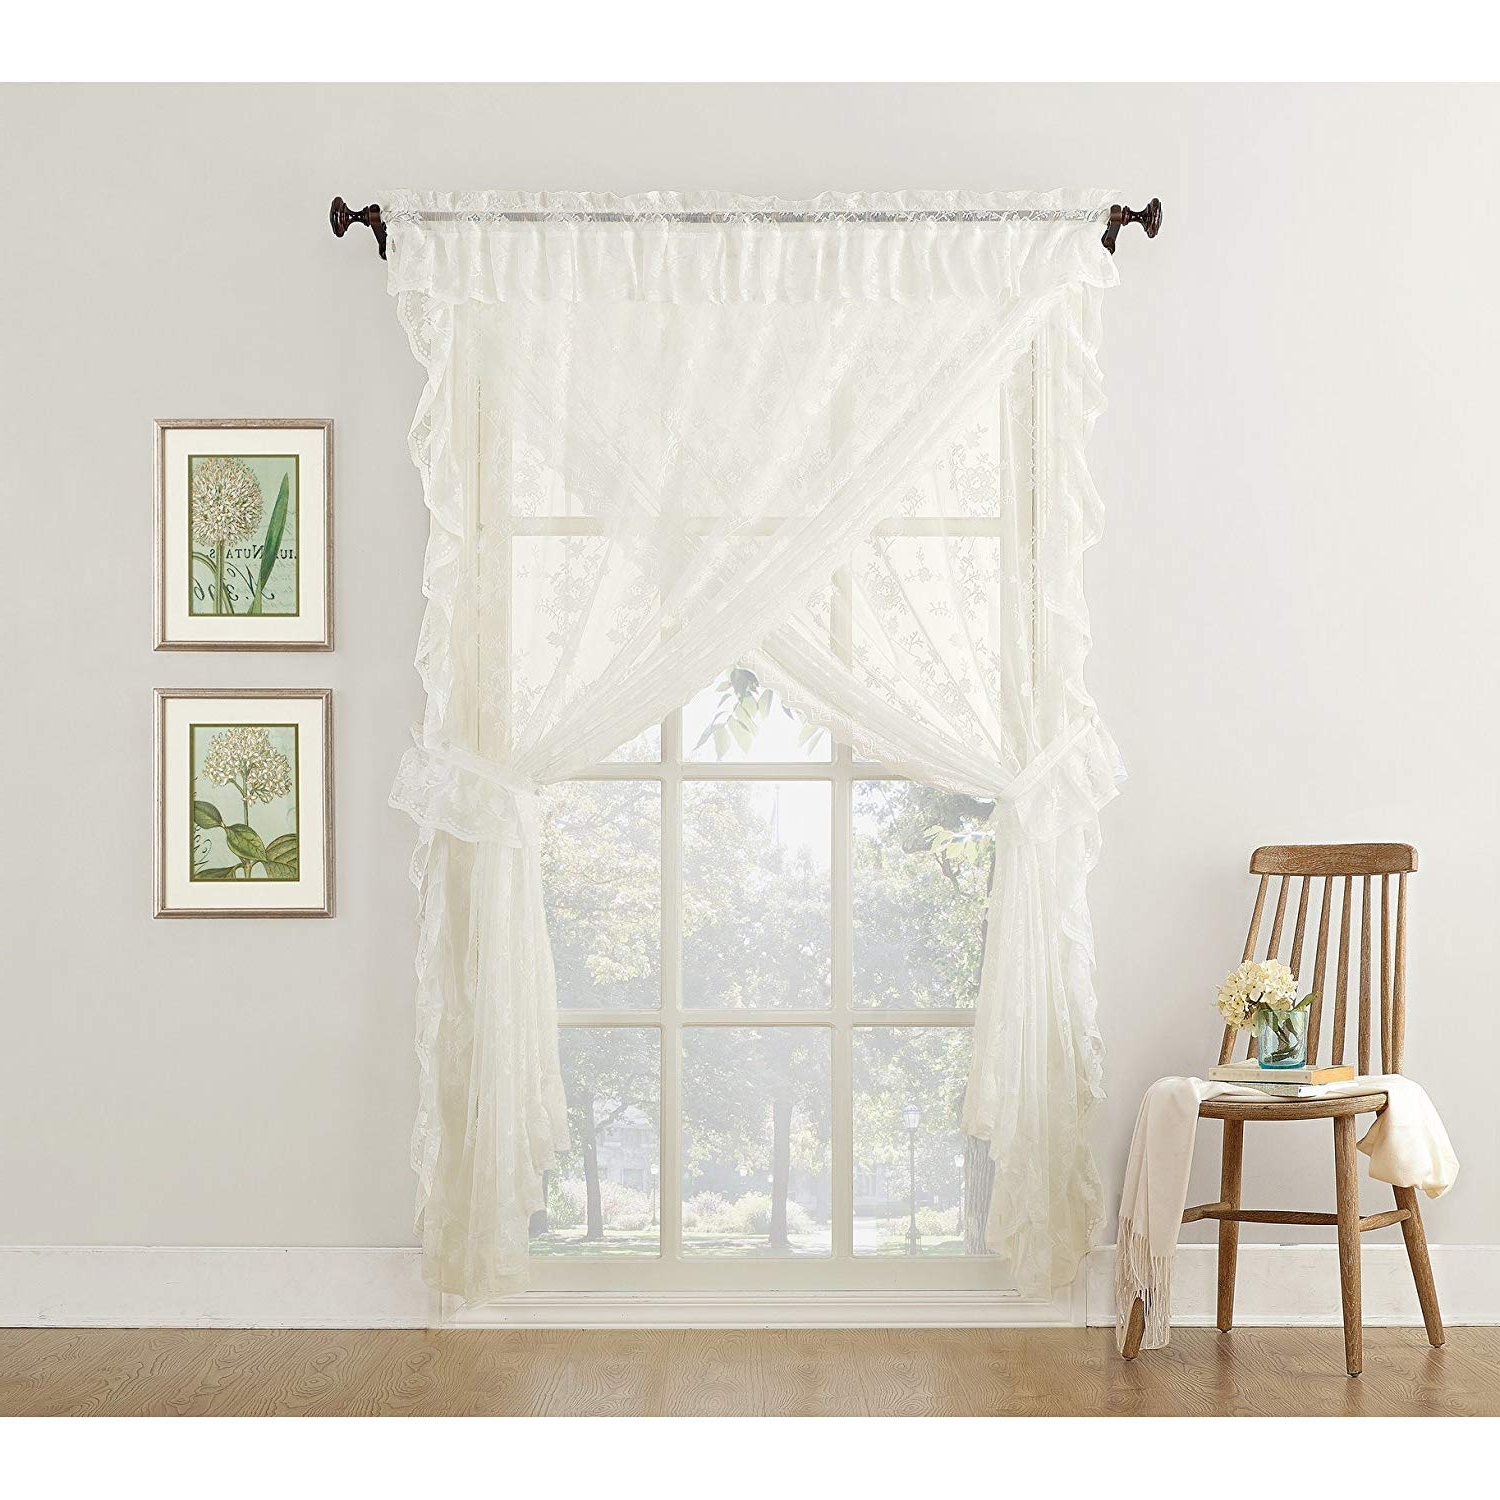 Amazon: Misc 5 Piece Ivory Priscilla Curtains, Sheer Intended For Latest Cotton Lace 5 Piece Window Tier And Swag Sets (View 20 of 20)